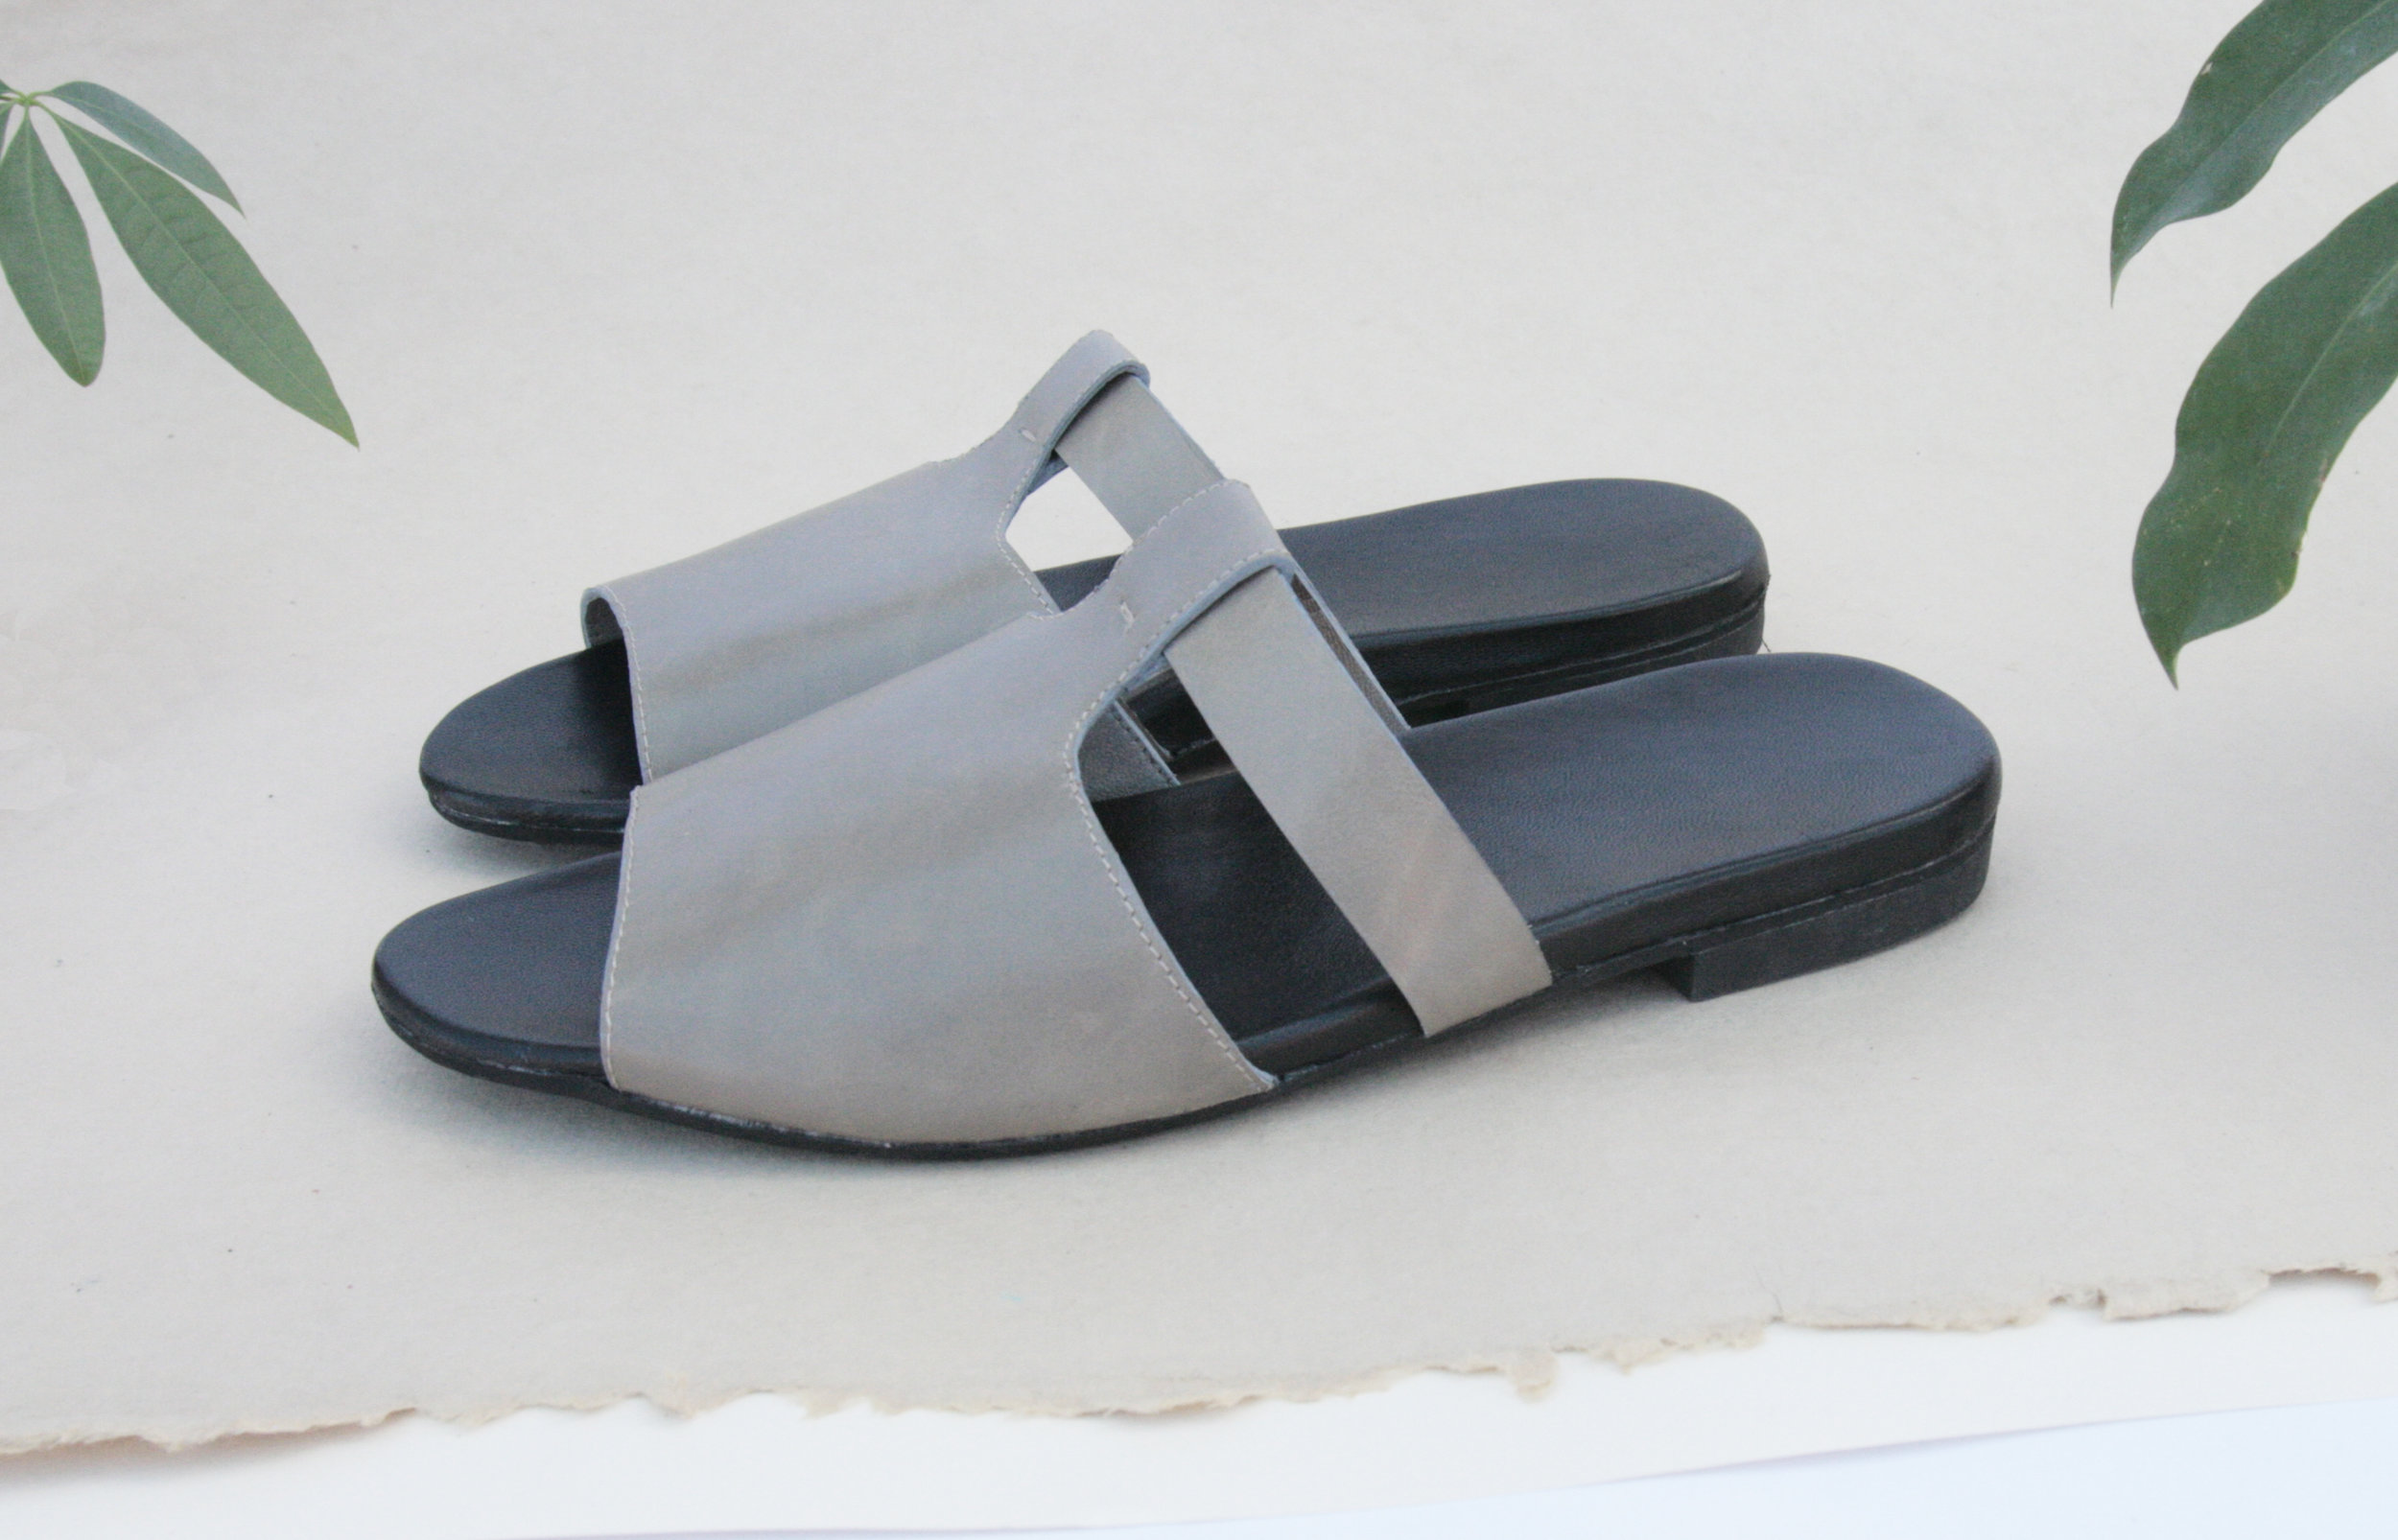 T-Strap Slide - leather comfort sandal shoe - Made in Brooklyn, NY